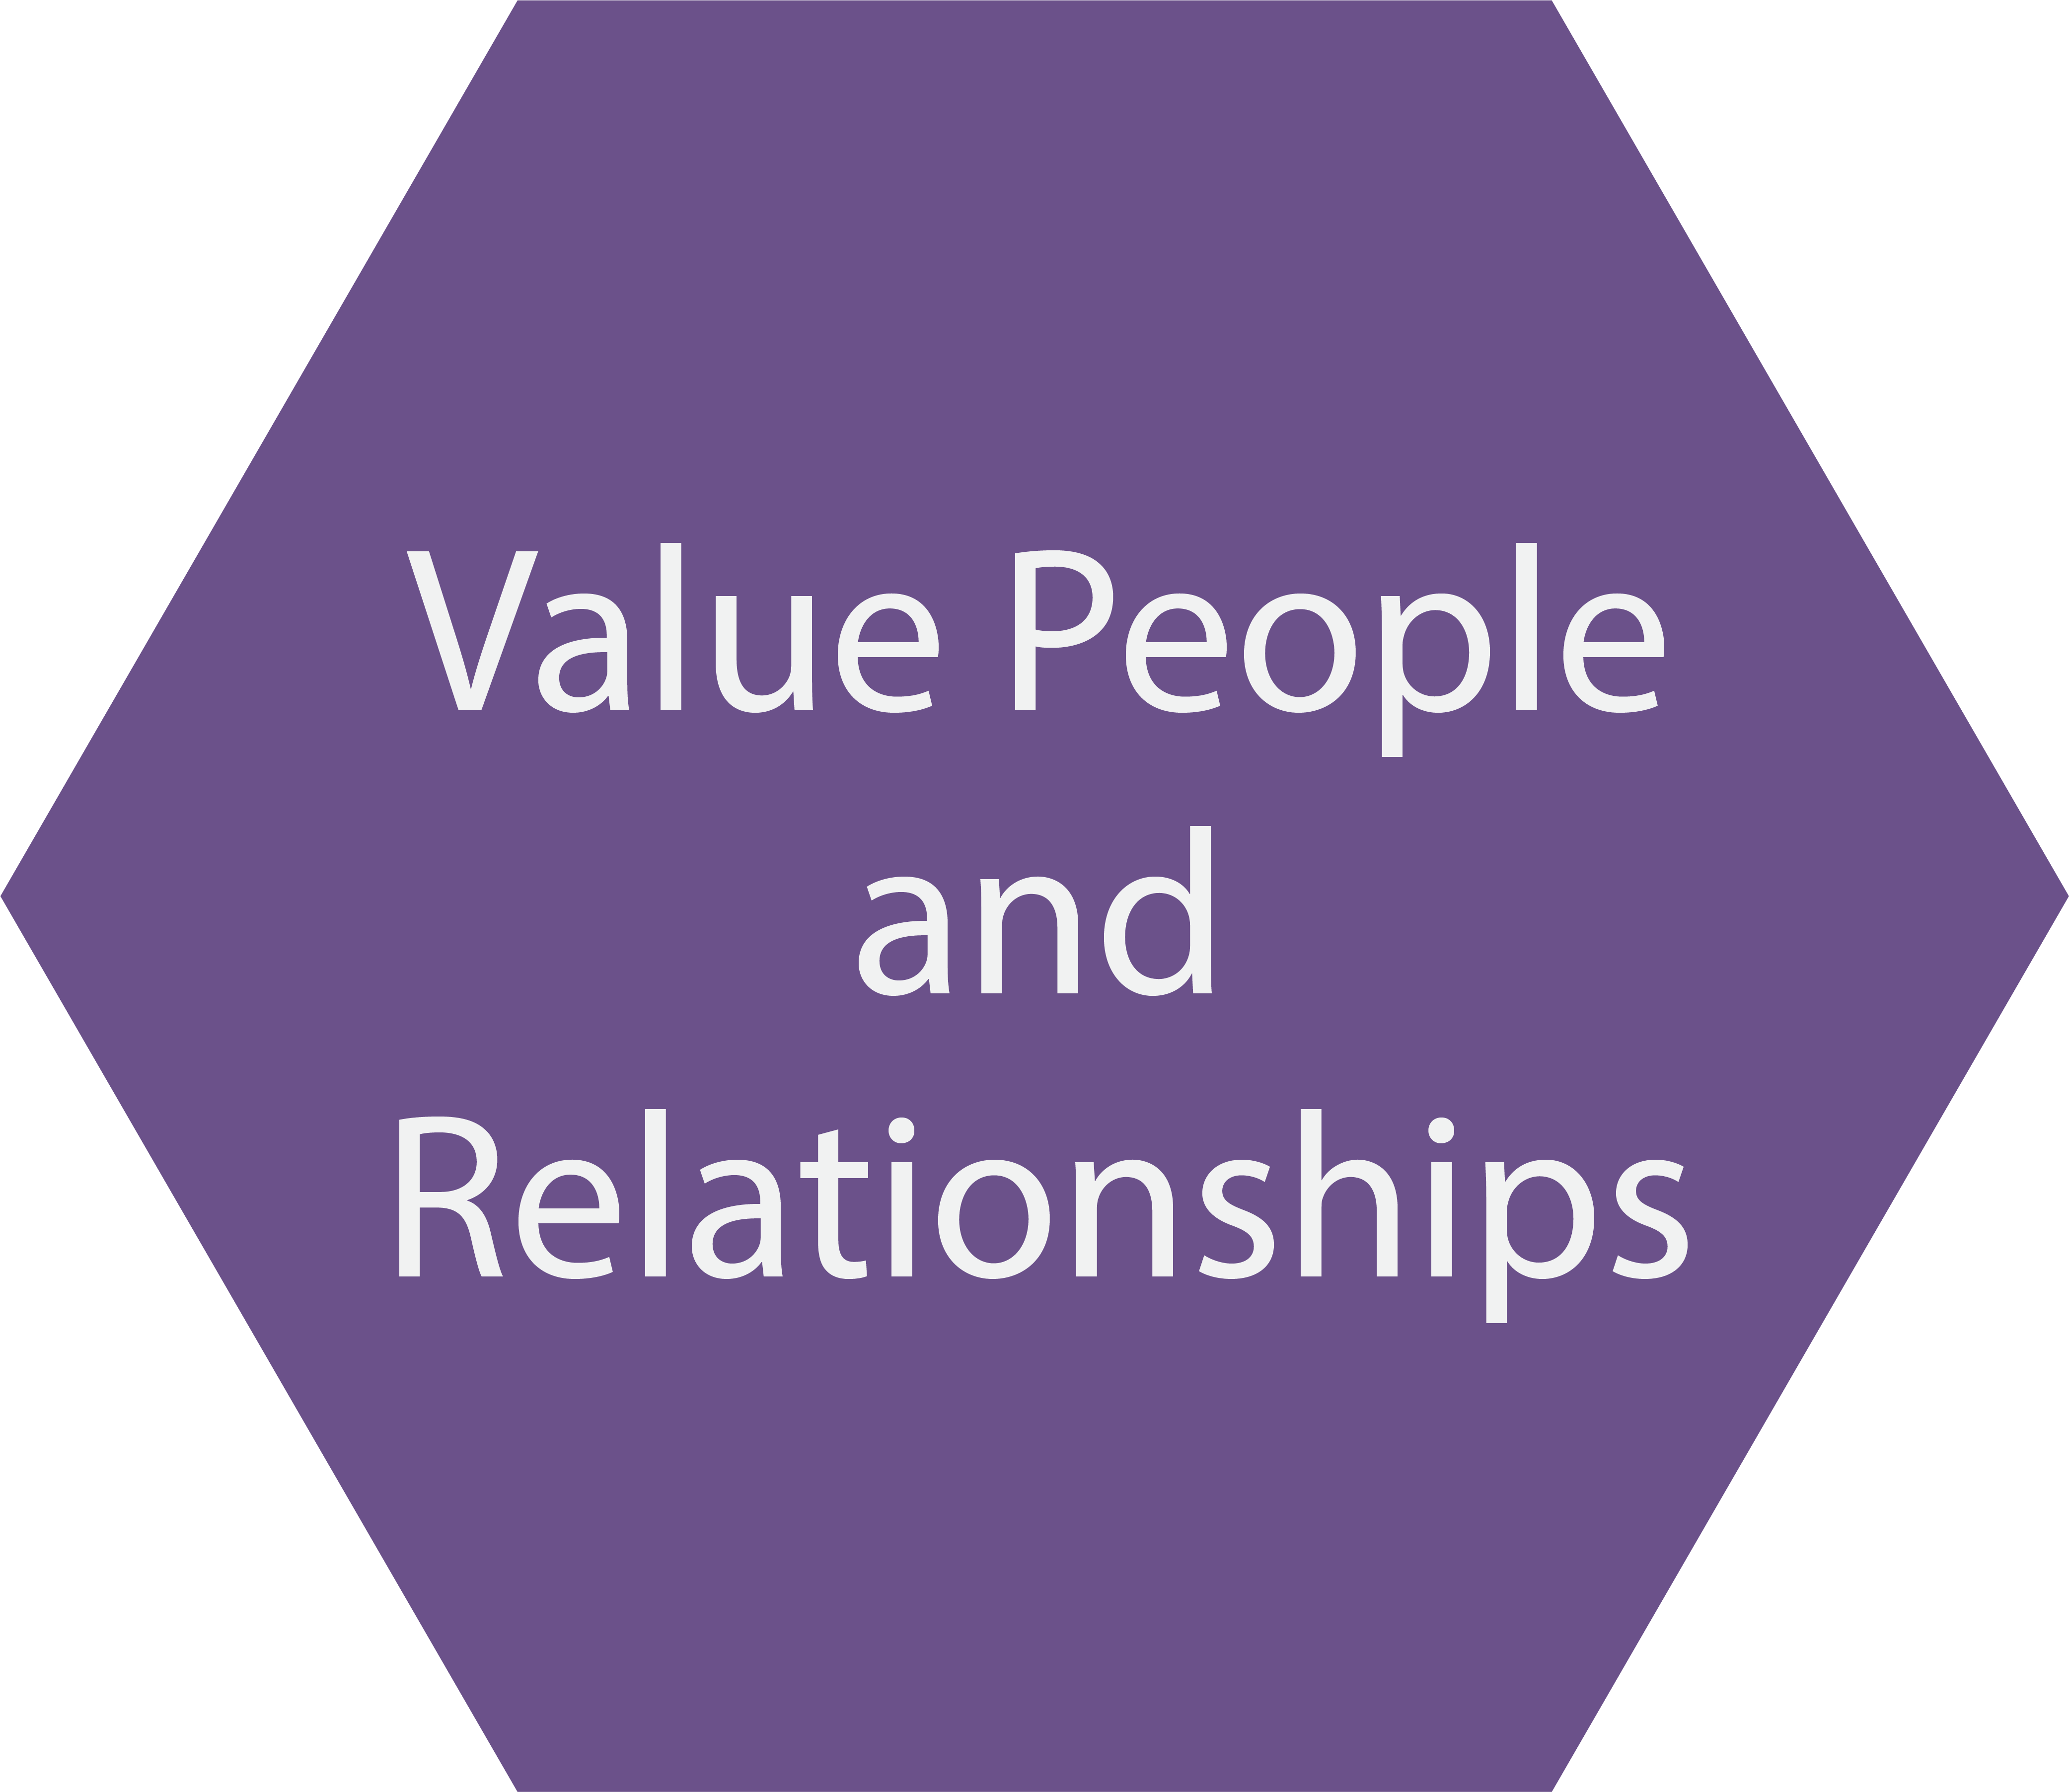 Value People & Relationships, workplace culture, respect and collaboration